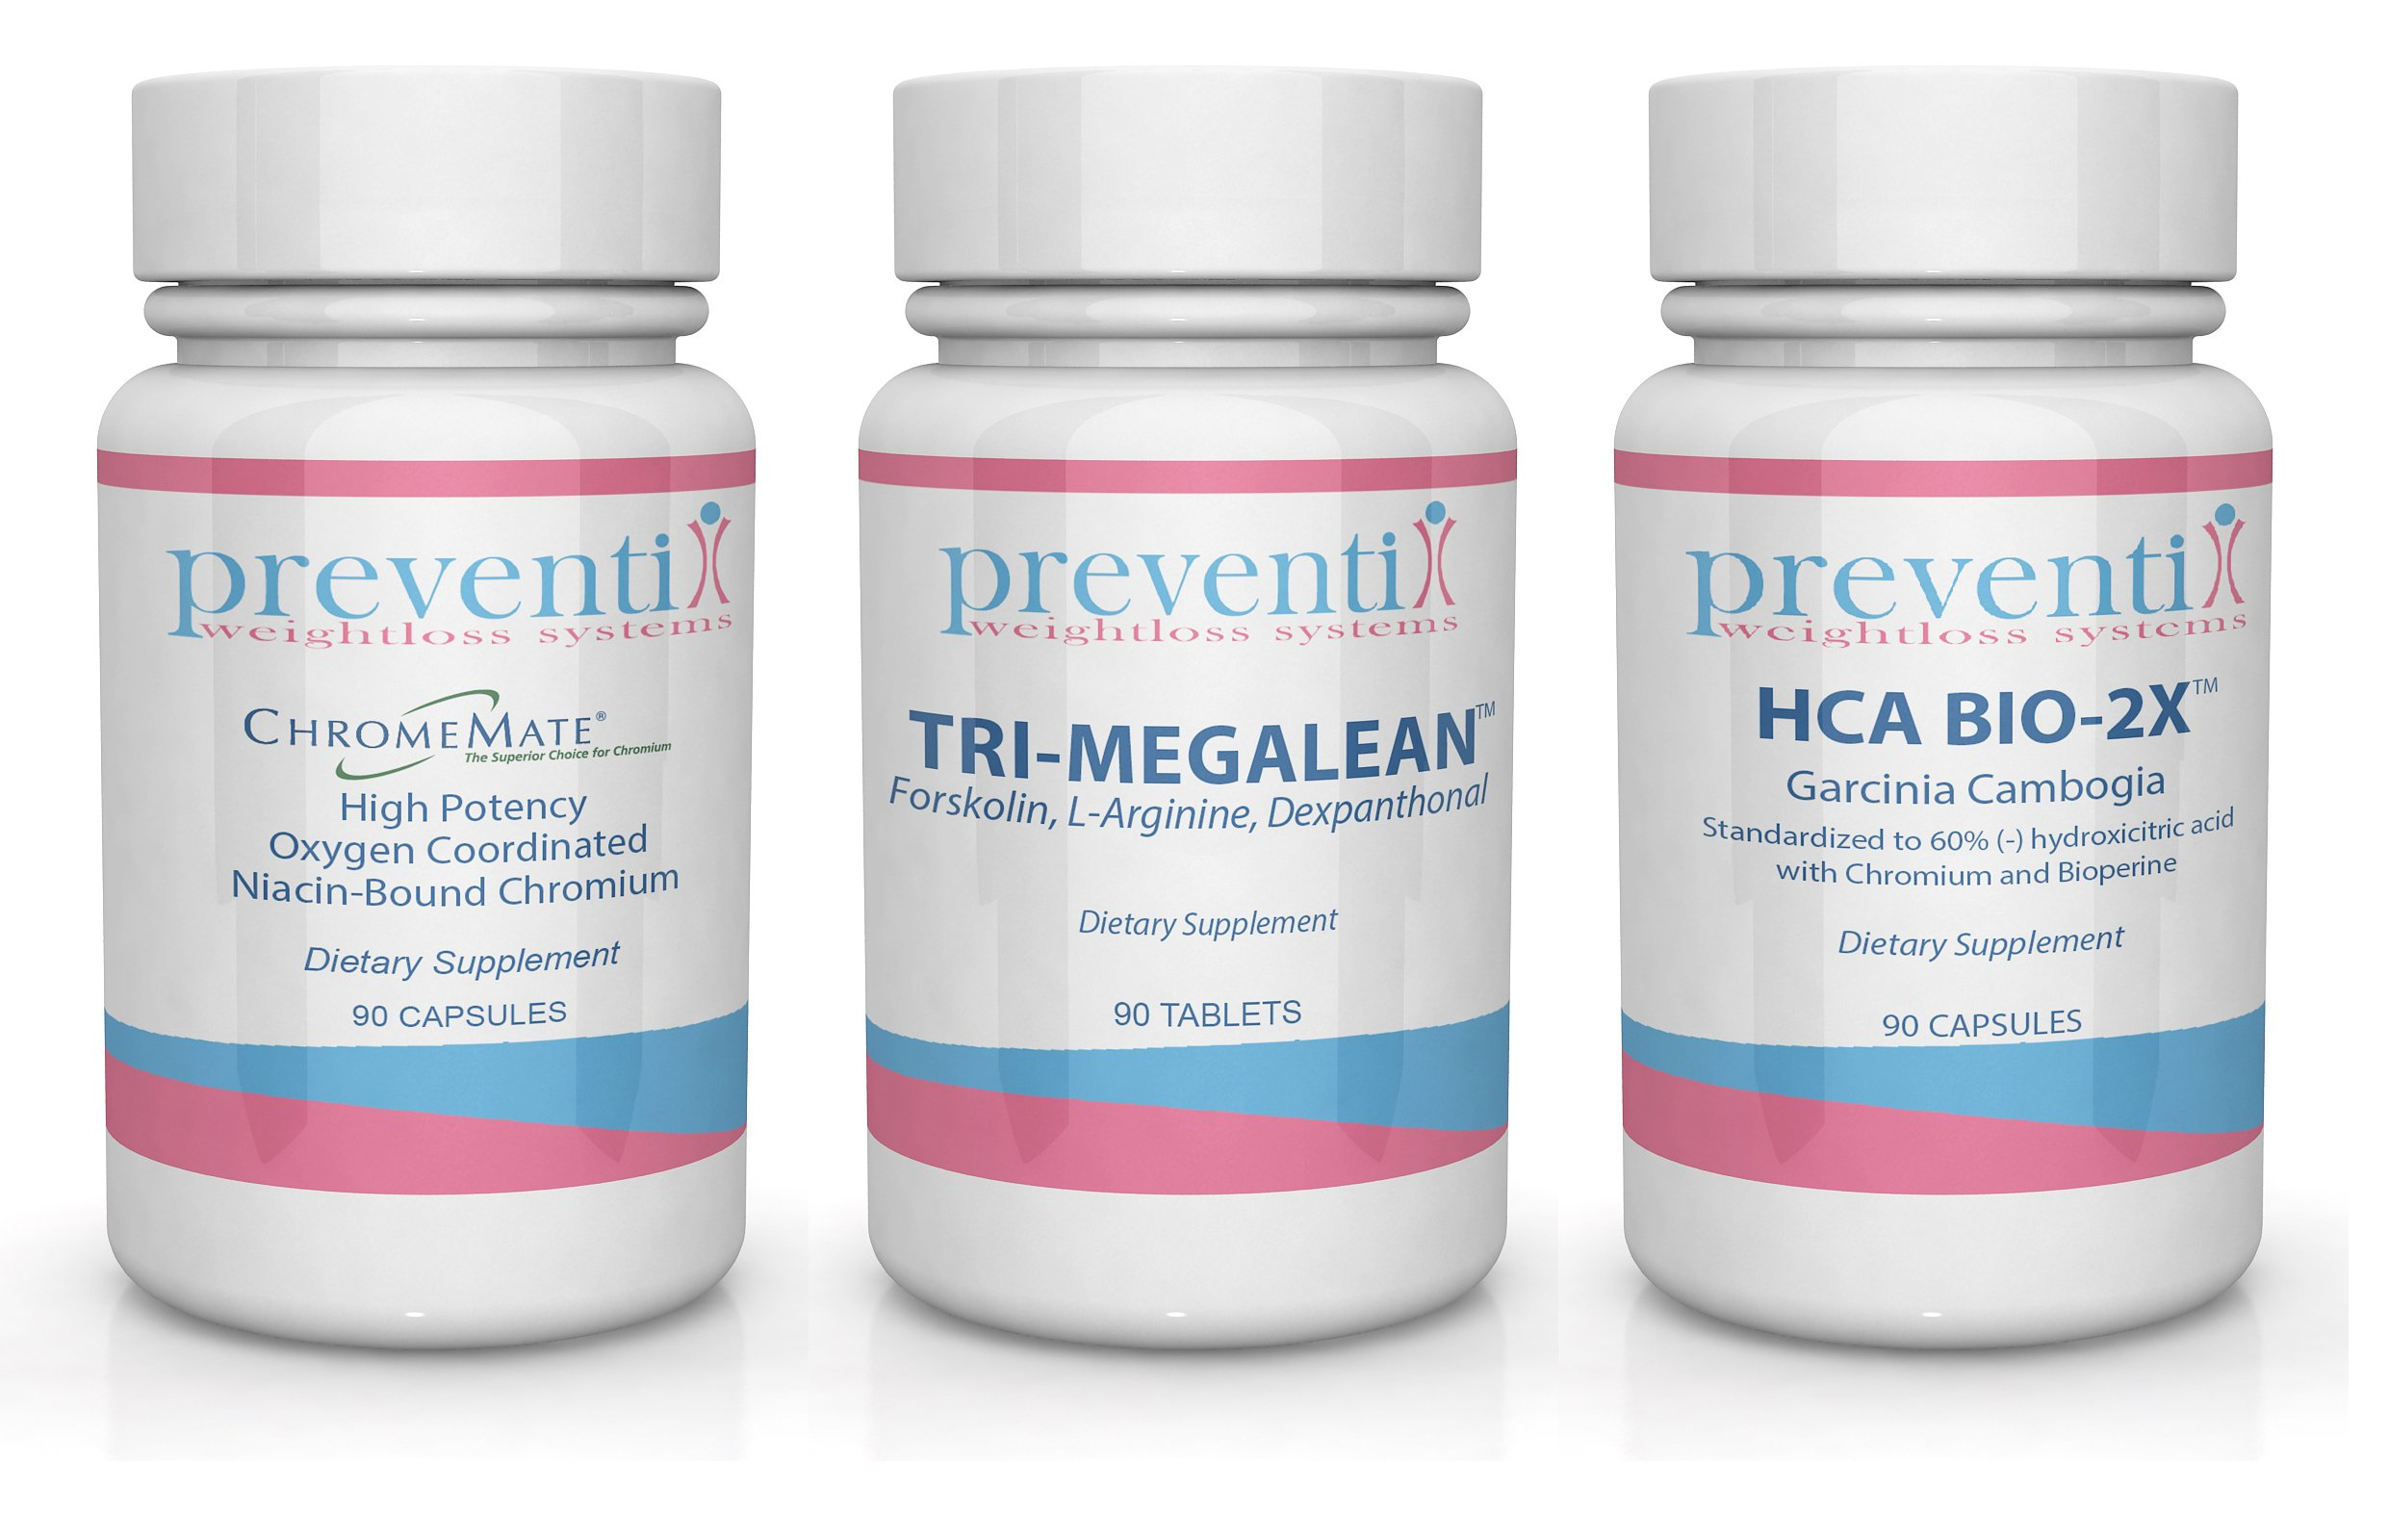 Phase 2: Rapid Weight Loss 3 Pack Bundle Formulated and Used by Bariatric Physicians to Block Carbohydrates and Acclerate Fat Burning